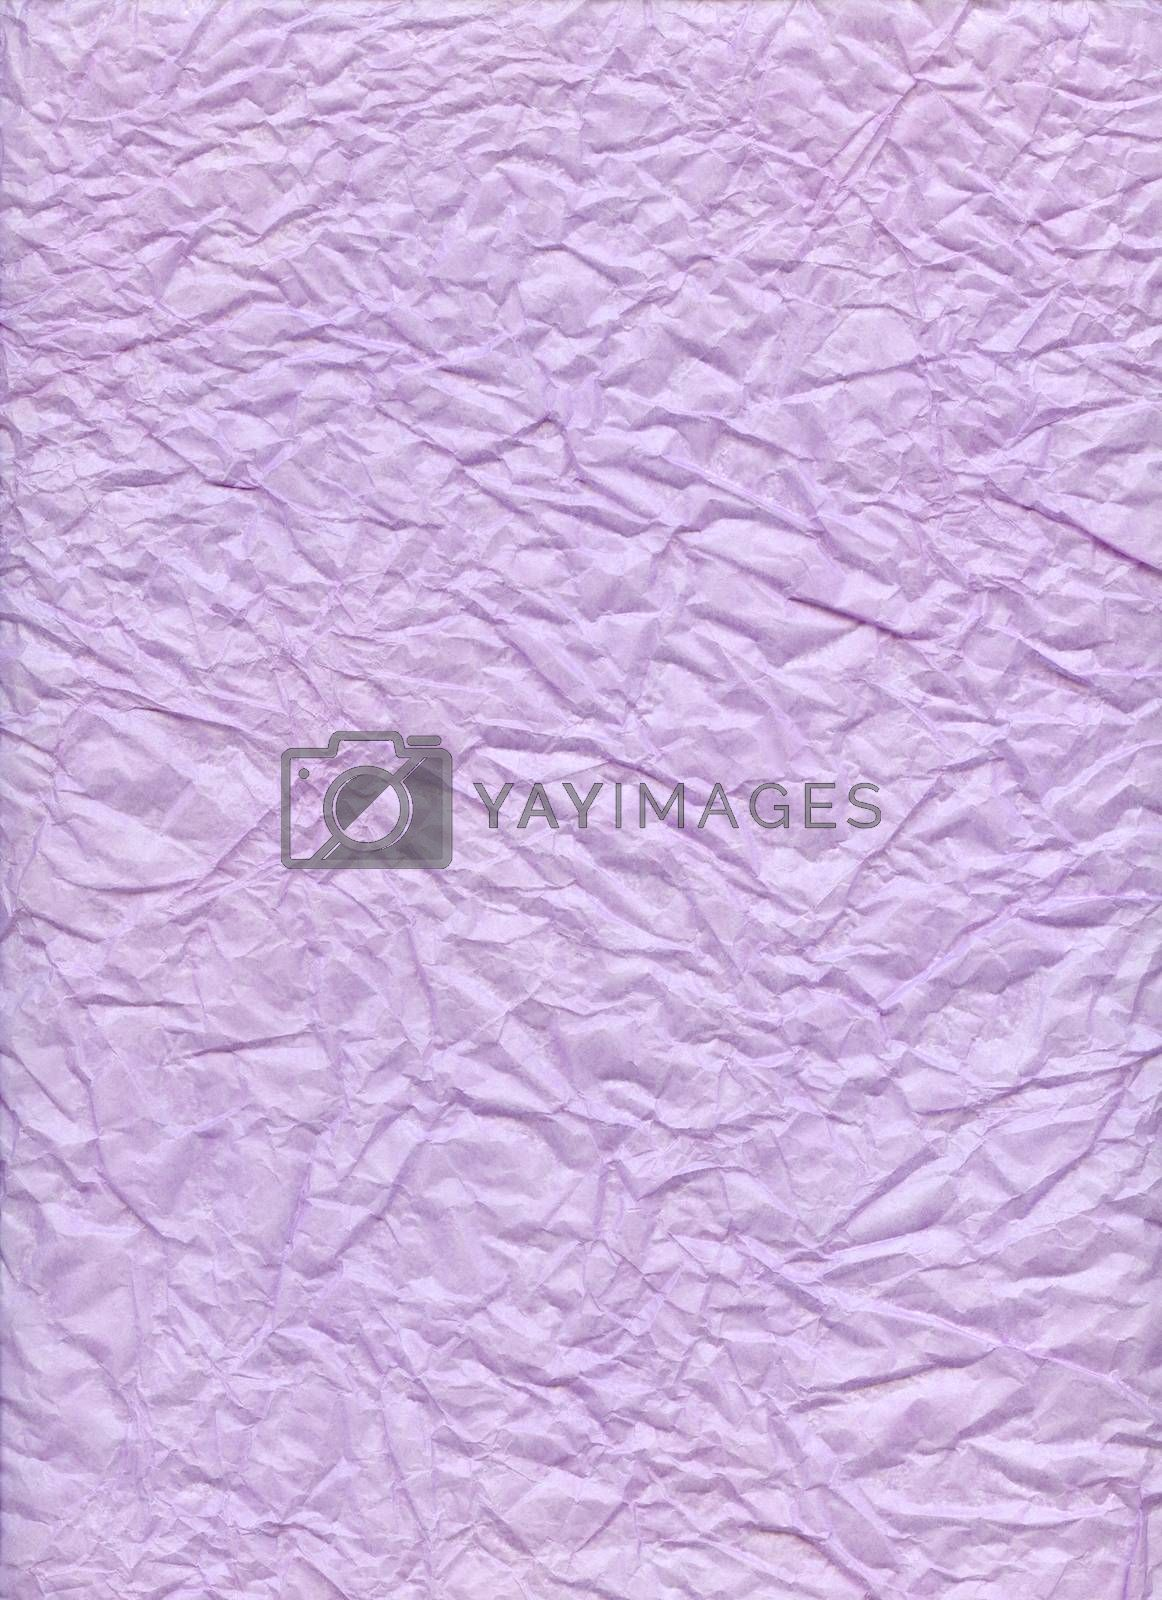 Crumpled paper lilac. Textured background.